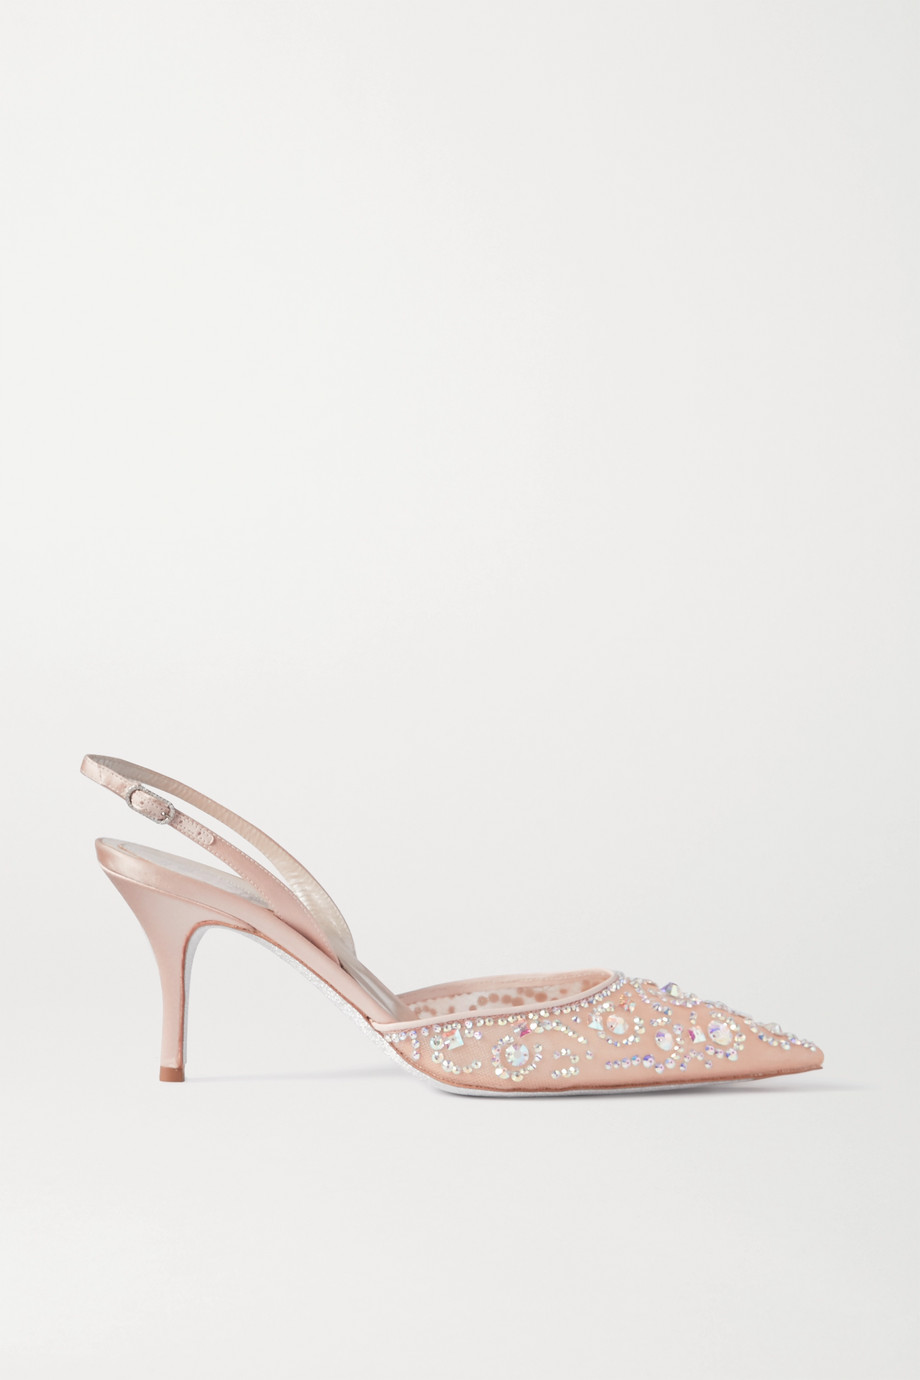 René Caovilla Veneziana crystal-embellished satin and mesh slingback pumps